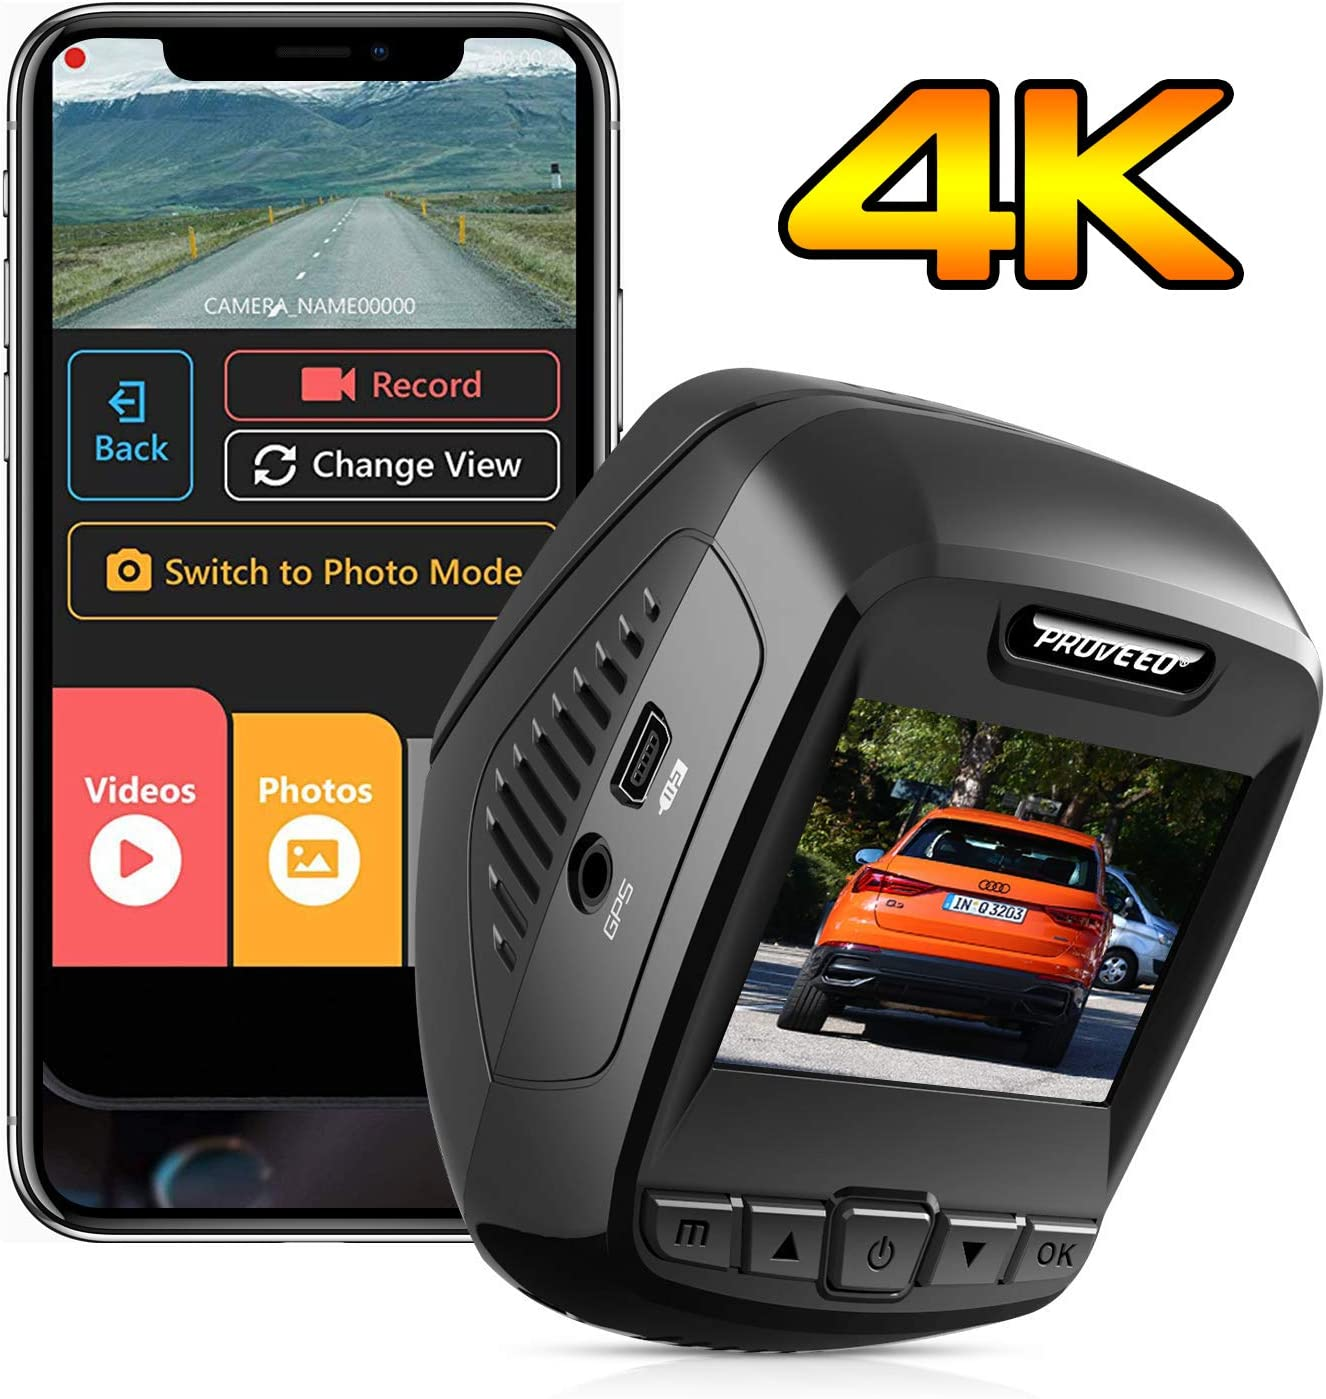 Pruveeo T7 4K Dash Cam Built in WiFi GPS, UHD 2160P Dash Camera for Cars, 2.4 inch LCD, 170 Degree, Wide Angle, Supercapacitor, WDR